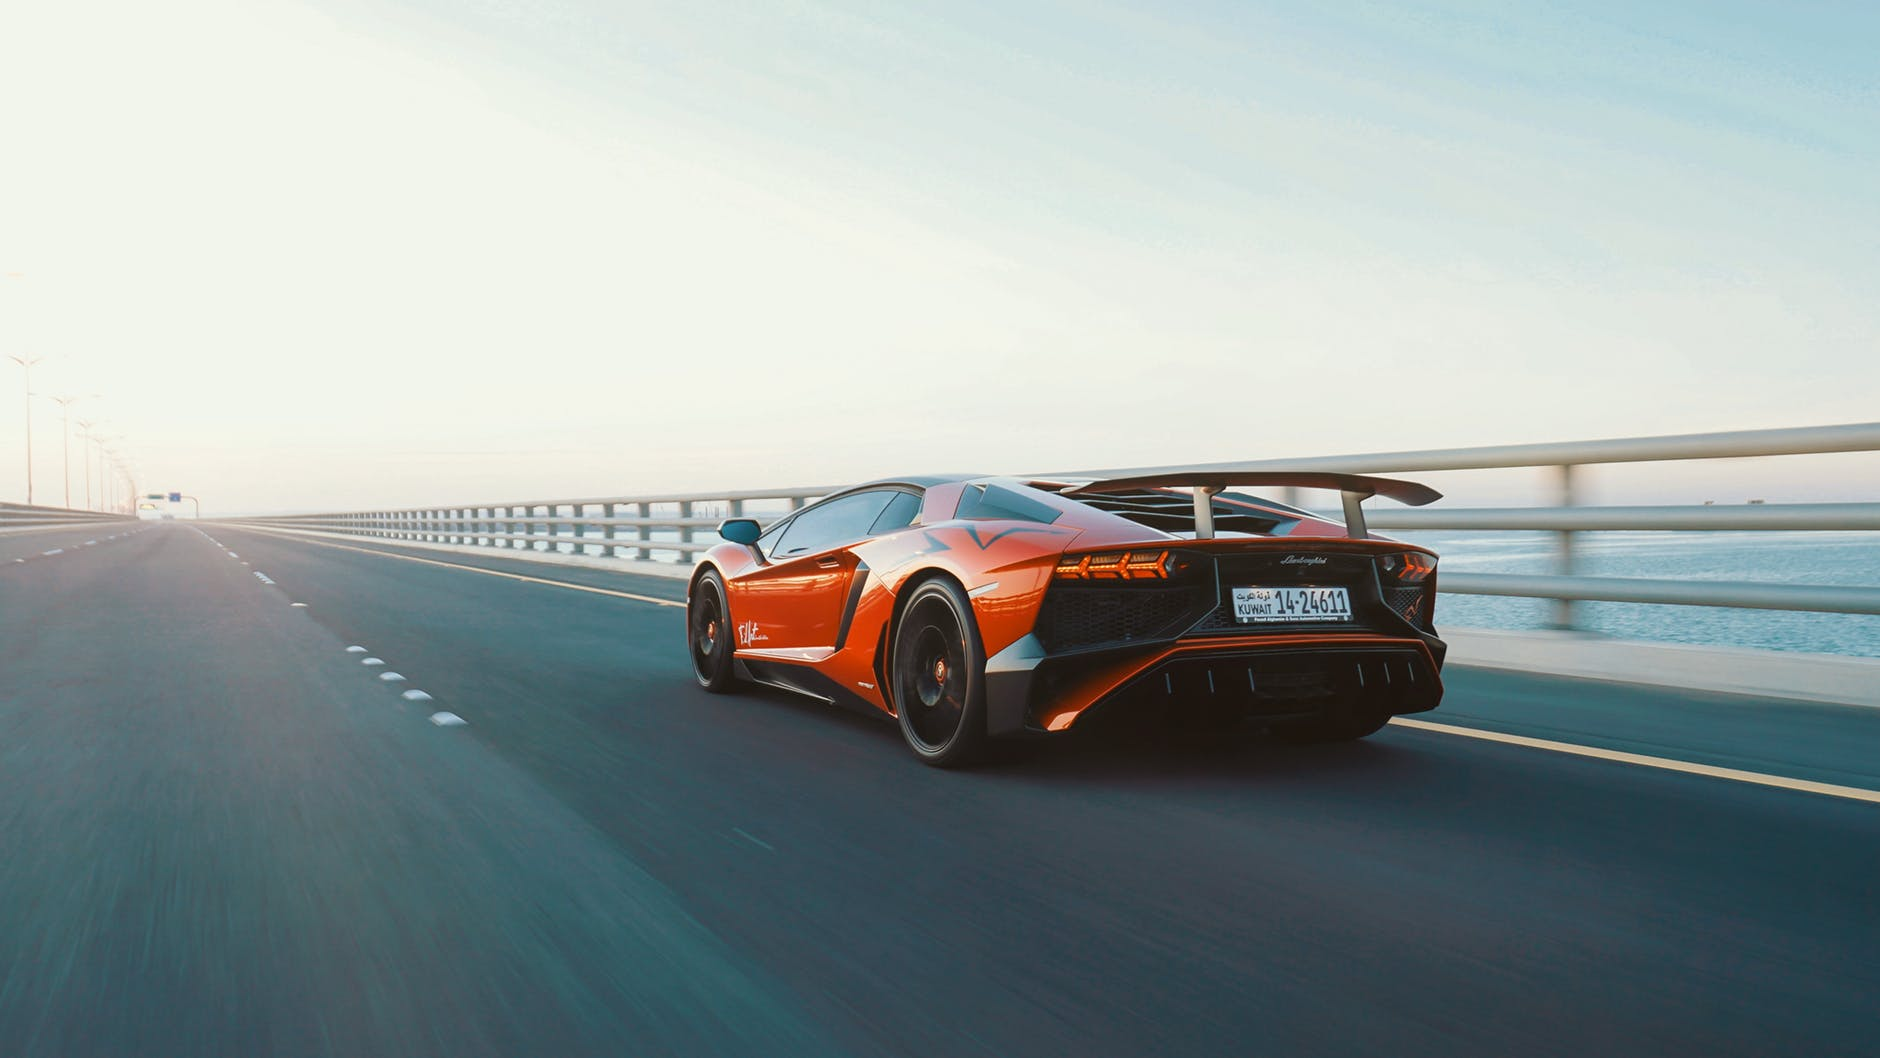 At the Speed of Light: 7 Reasons to Own a Lamborghini